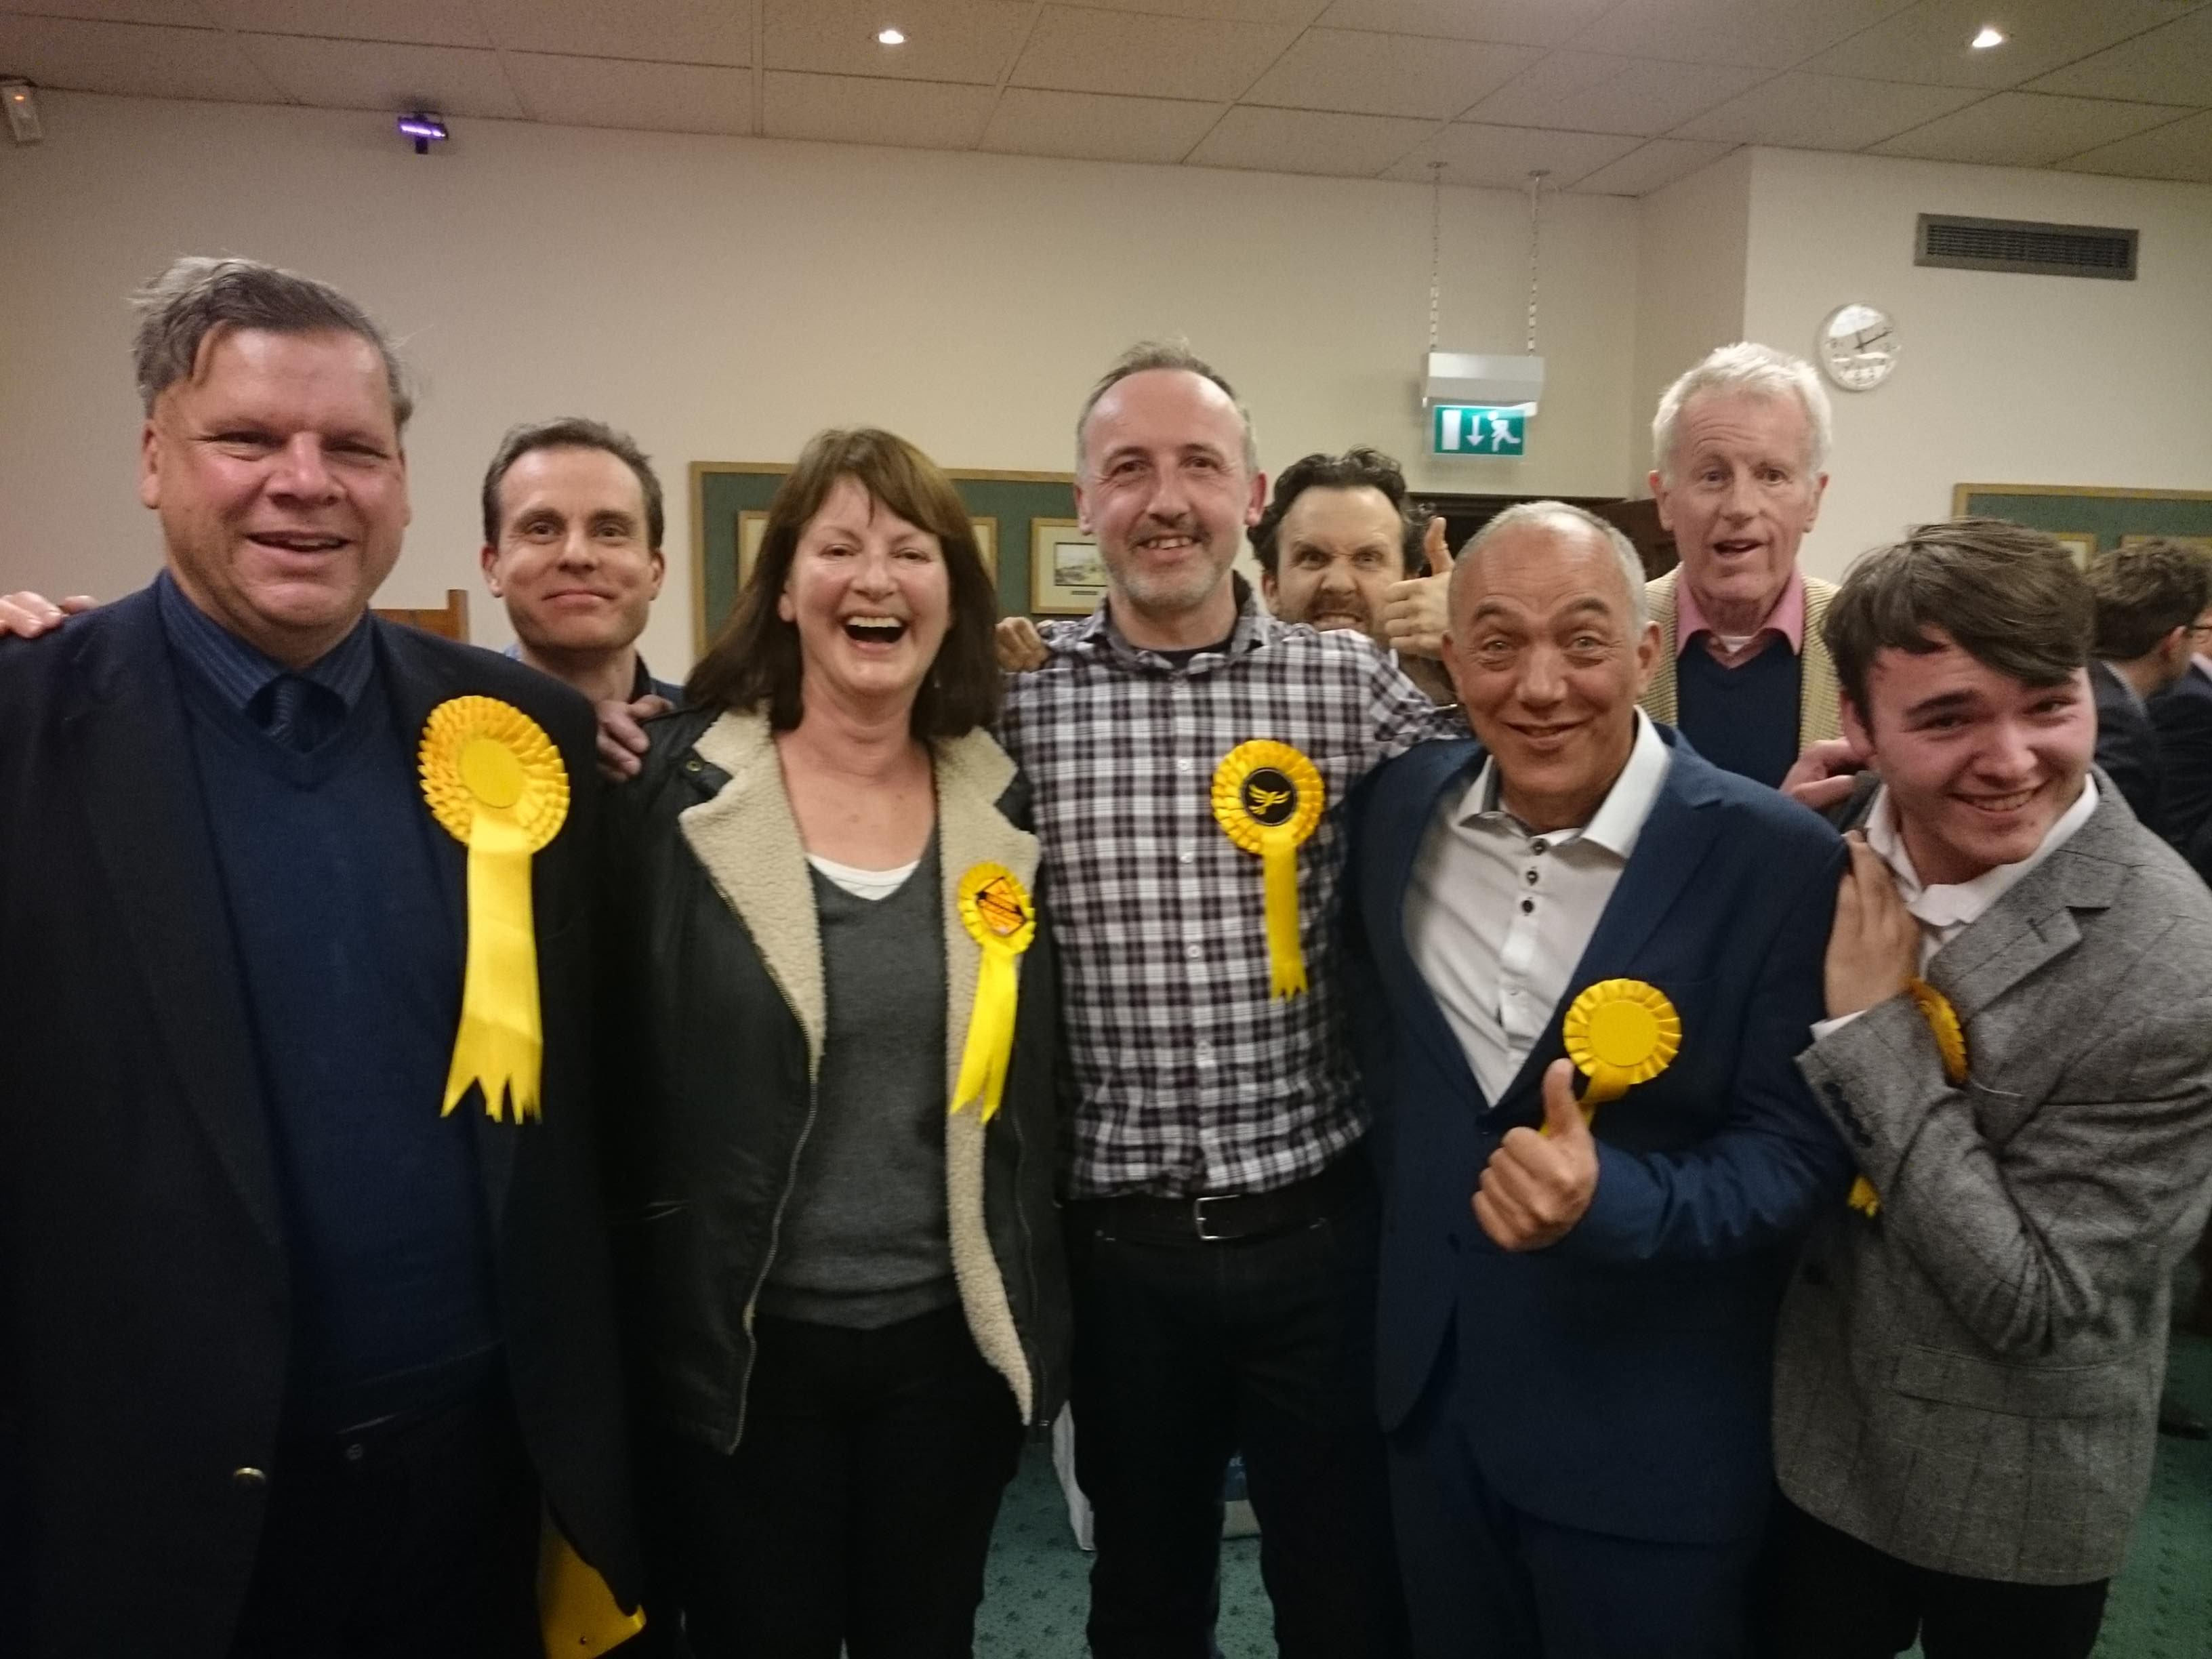 Liberal Democrat win in West Oxfordshire